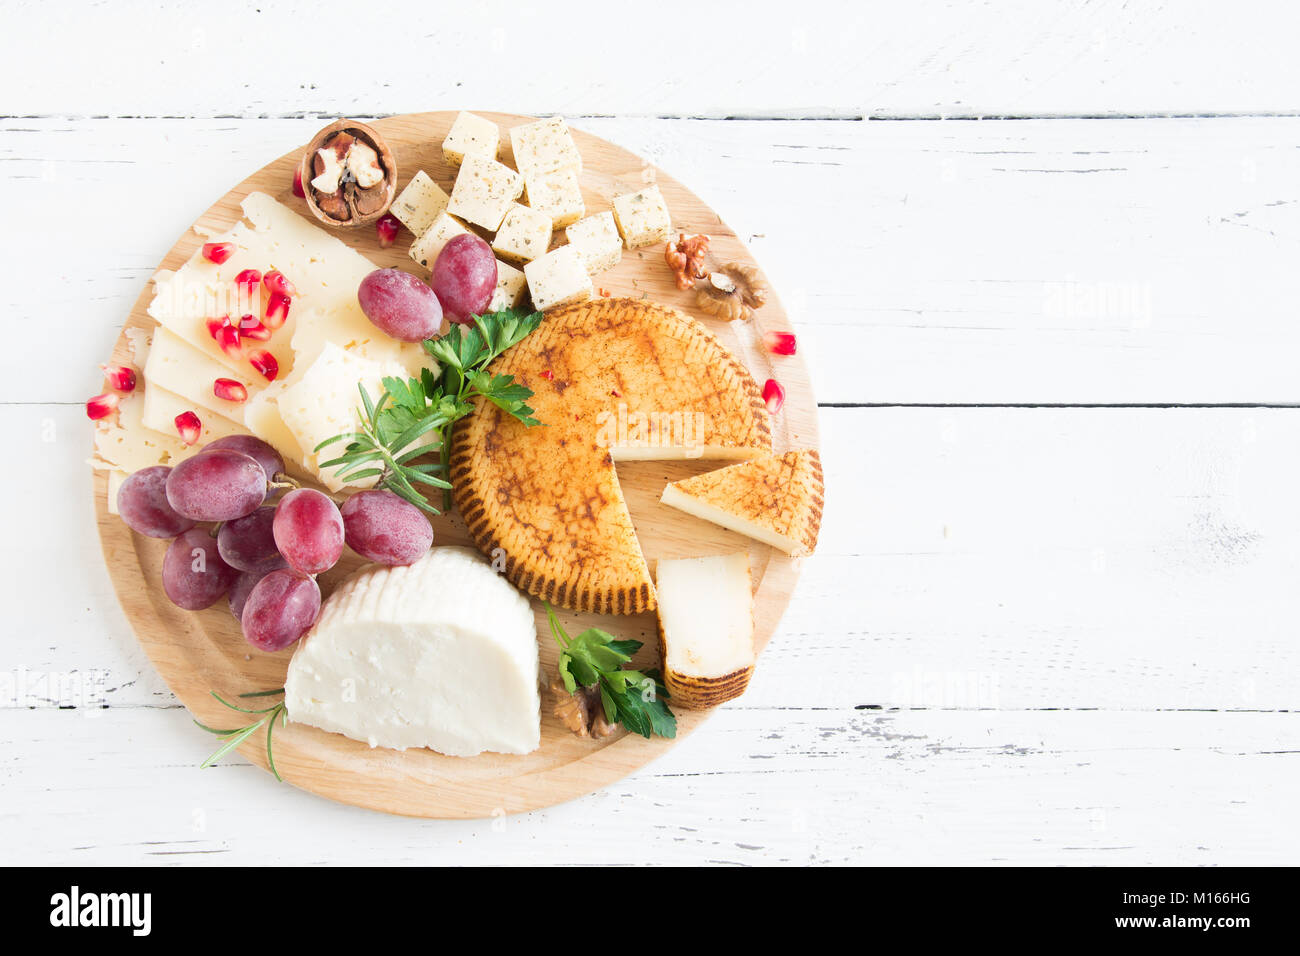 Cheese platter with assorted cheeses, grapes, nuts over white wooden background, copy space. Italian cheese and - Stock Image